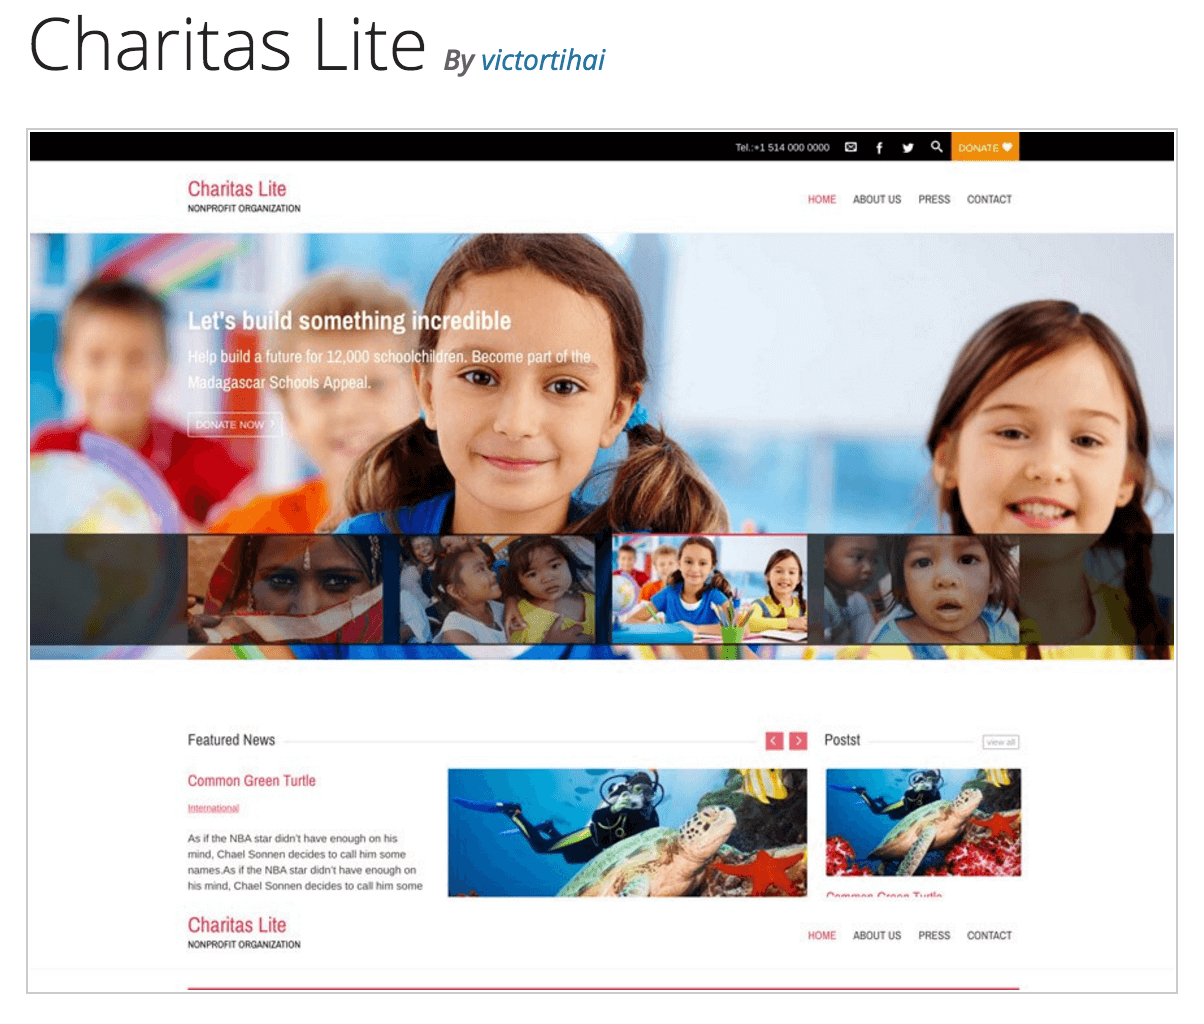 The Charitas Lite theme